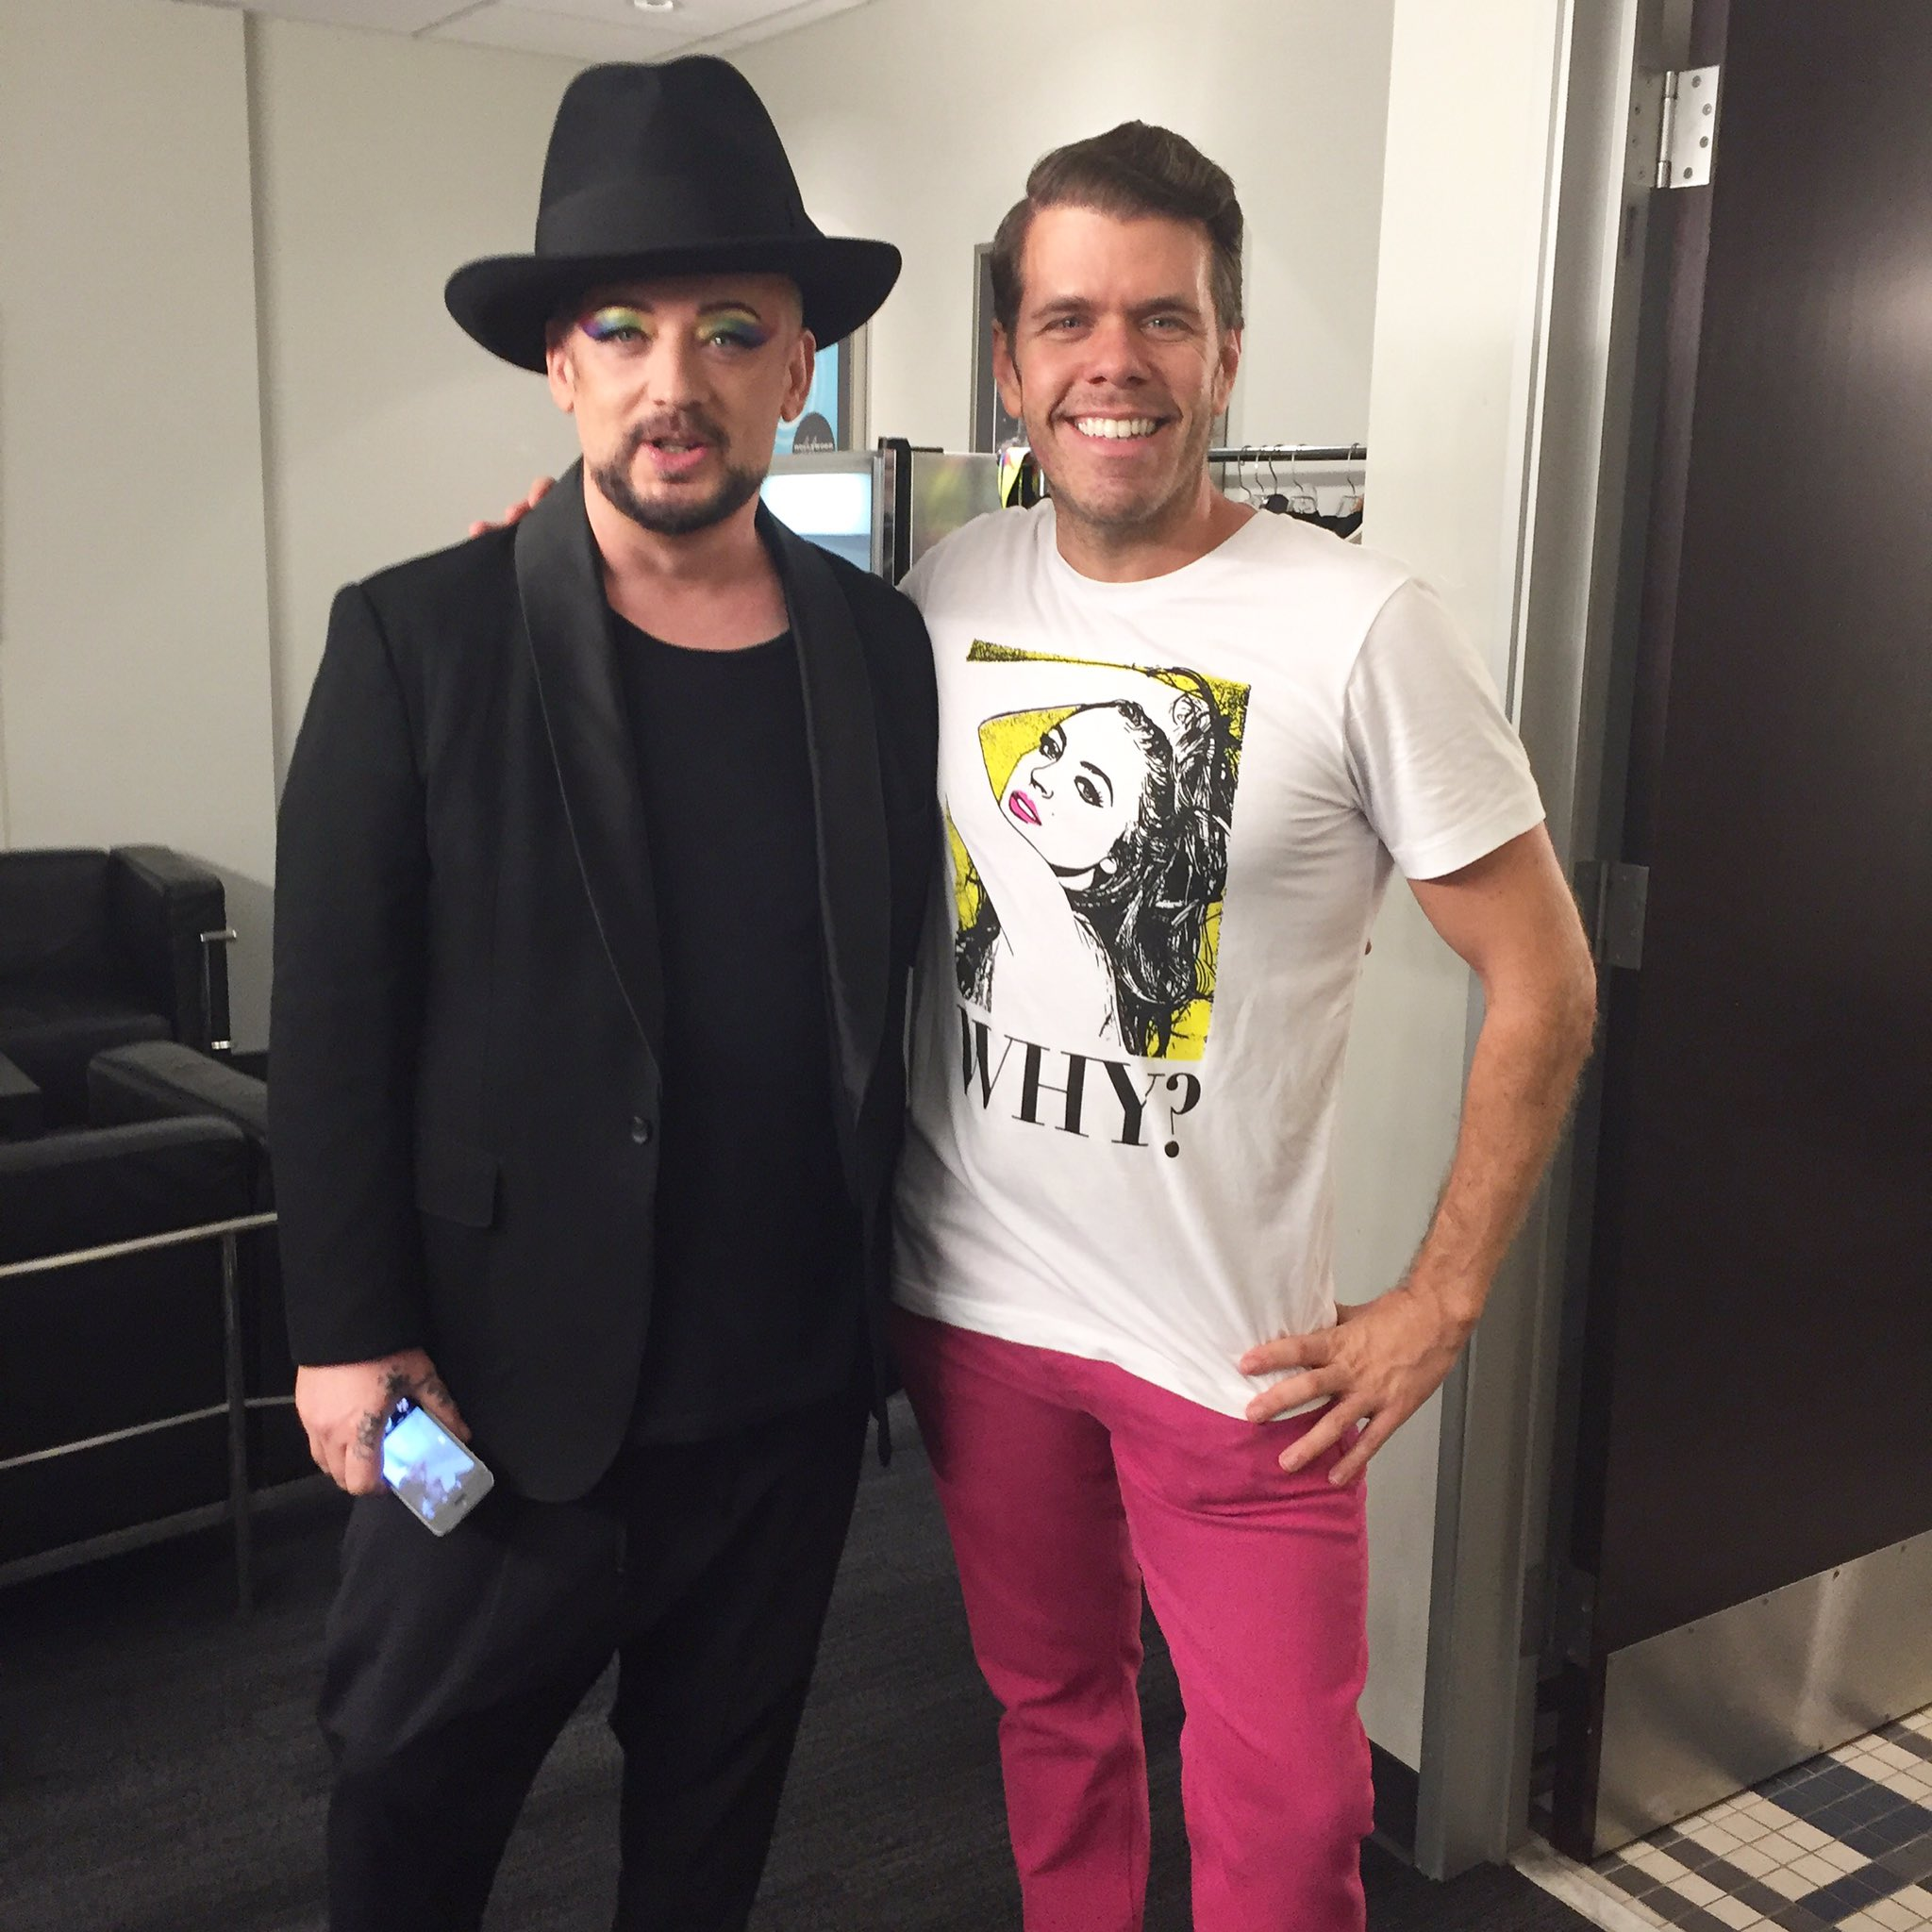 RT @ThePerezHilton: Legend! Thank you so much @BoyGeorge for your hospitality AND a shout-out on stage at the... https://t.co/zgiDzwHsFz ht…